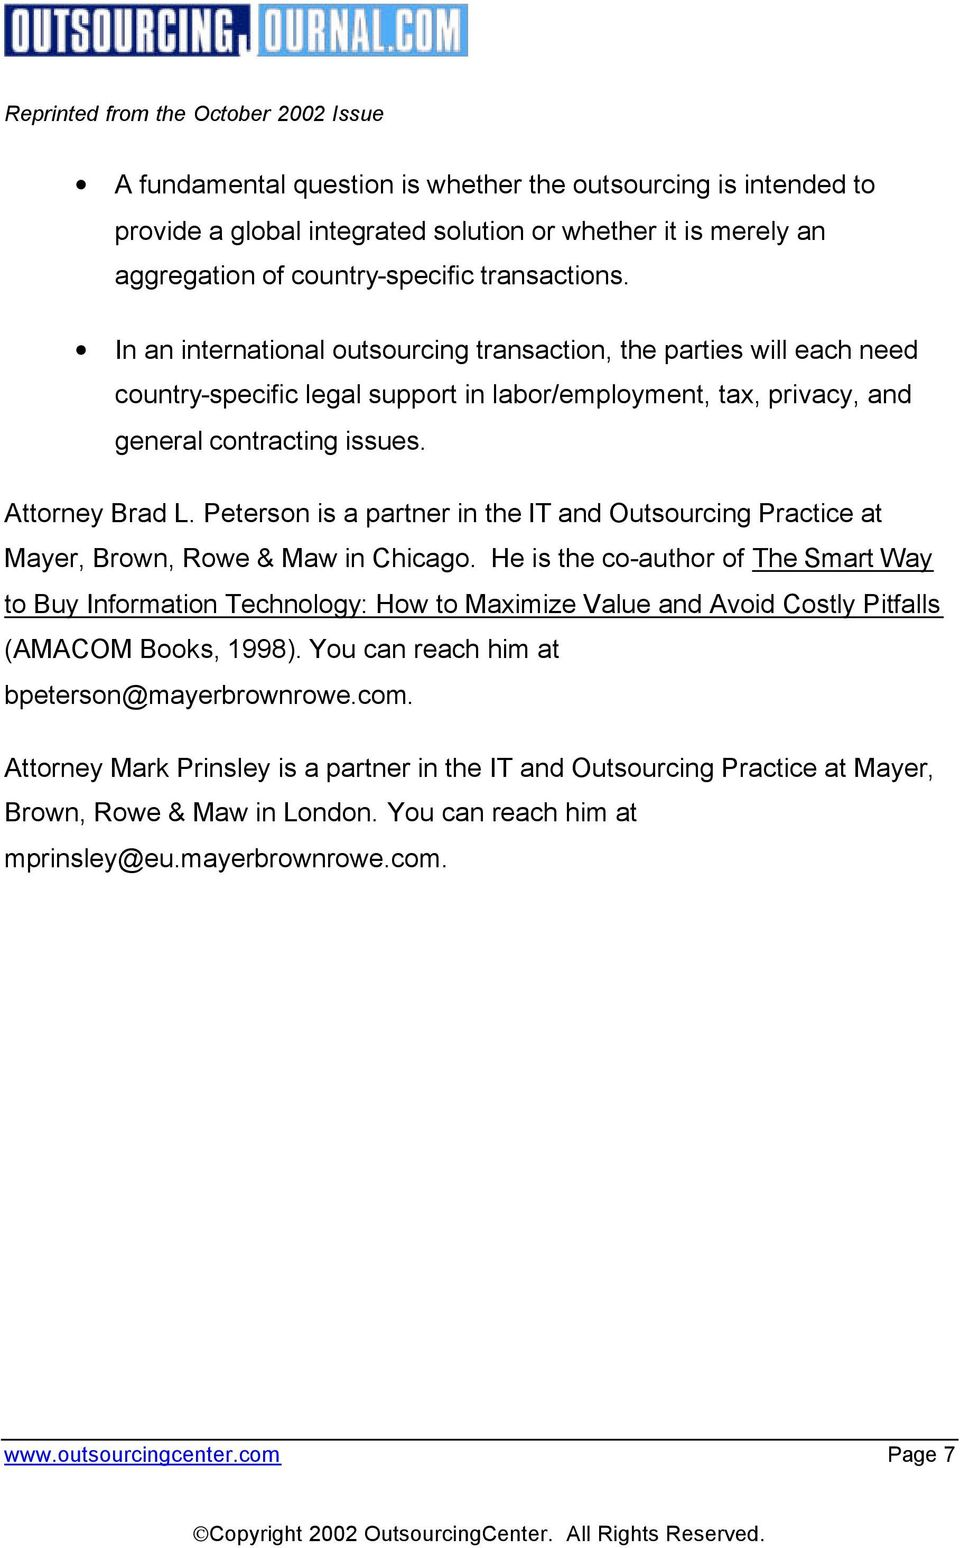 Peterson is a partner in the IT and Outsourcing Practice at Mayer, Brown, Rowe & Maw in Chicago.